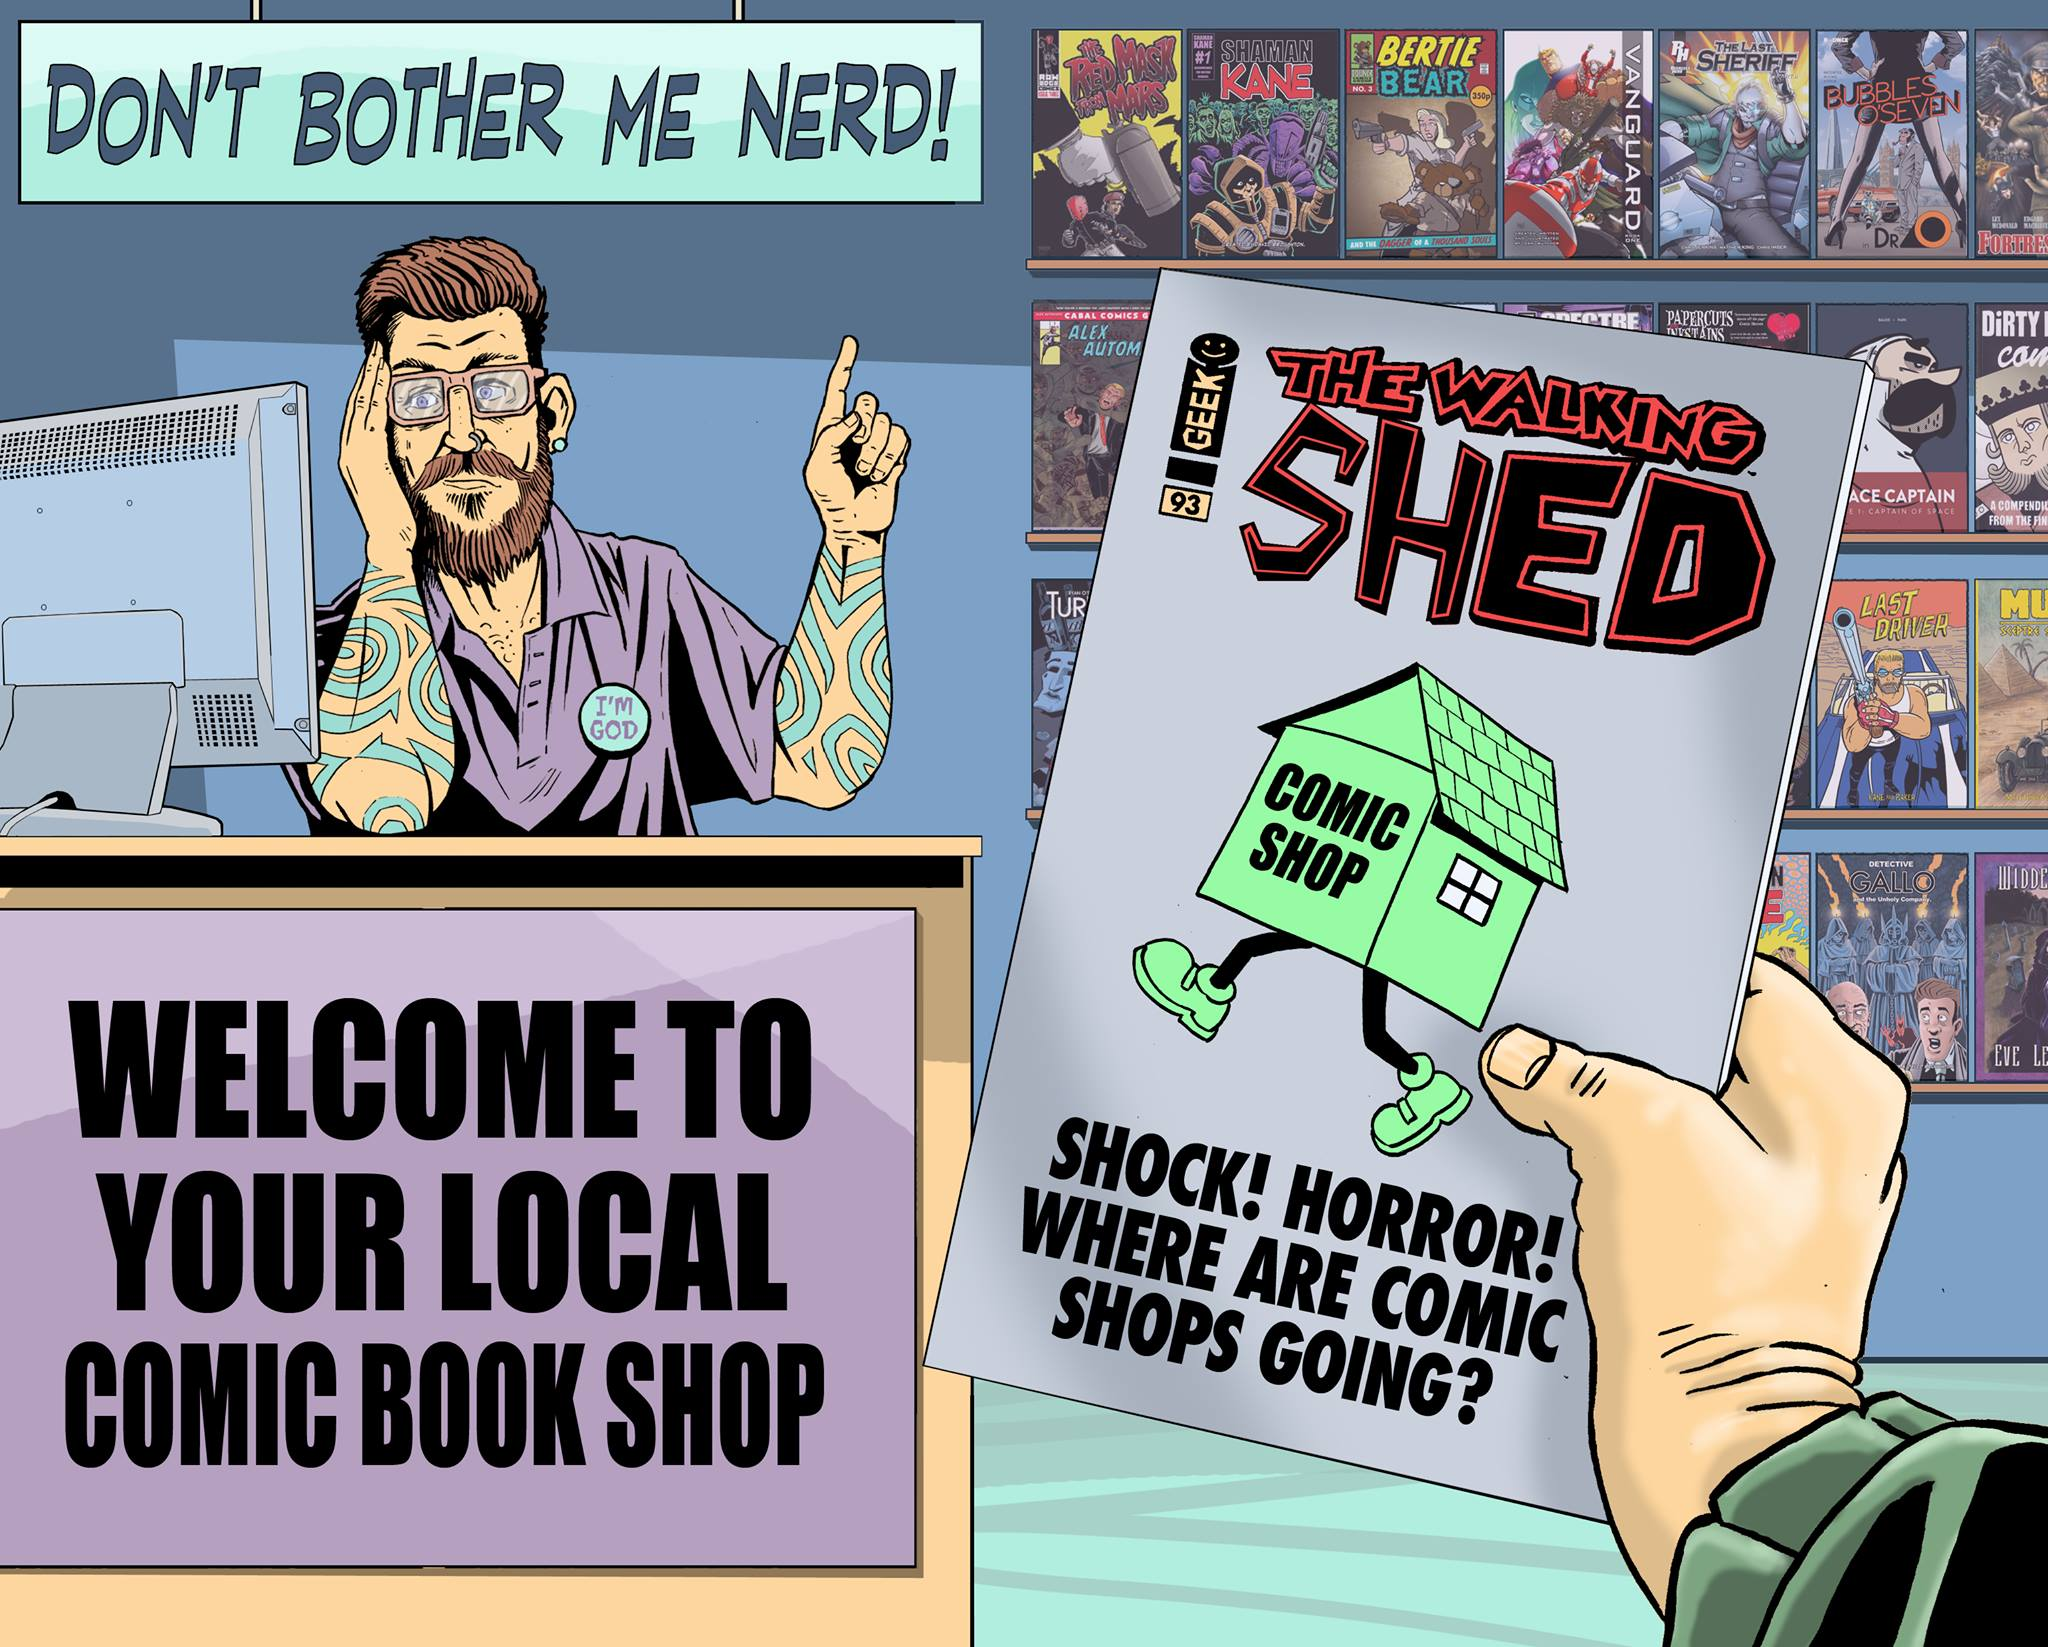 Tony Esmond's Comic Shop Survival Guide - Part One. Art by David Broughton